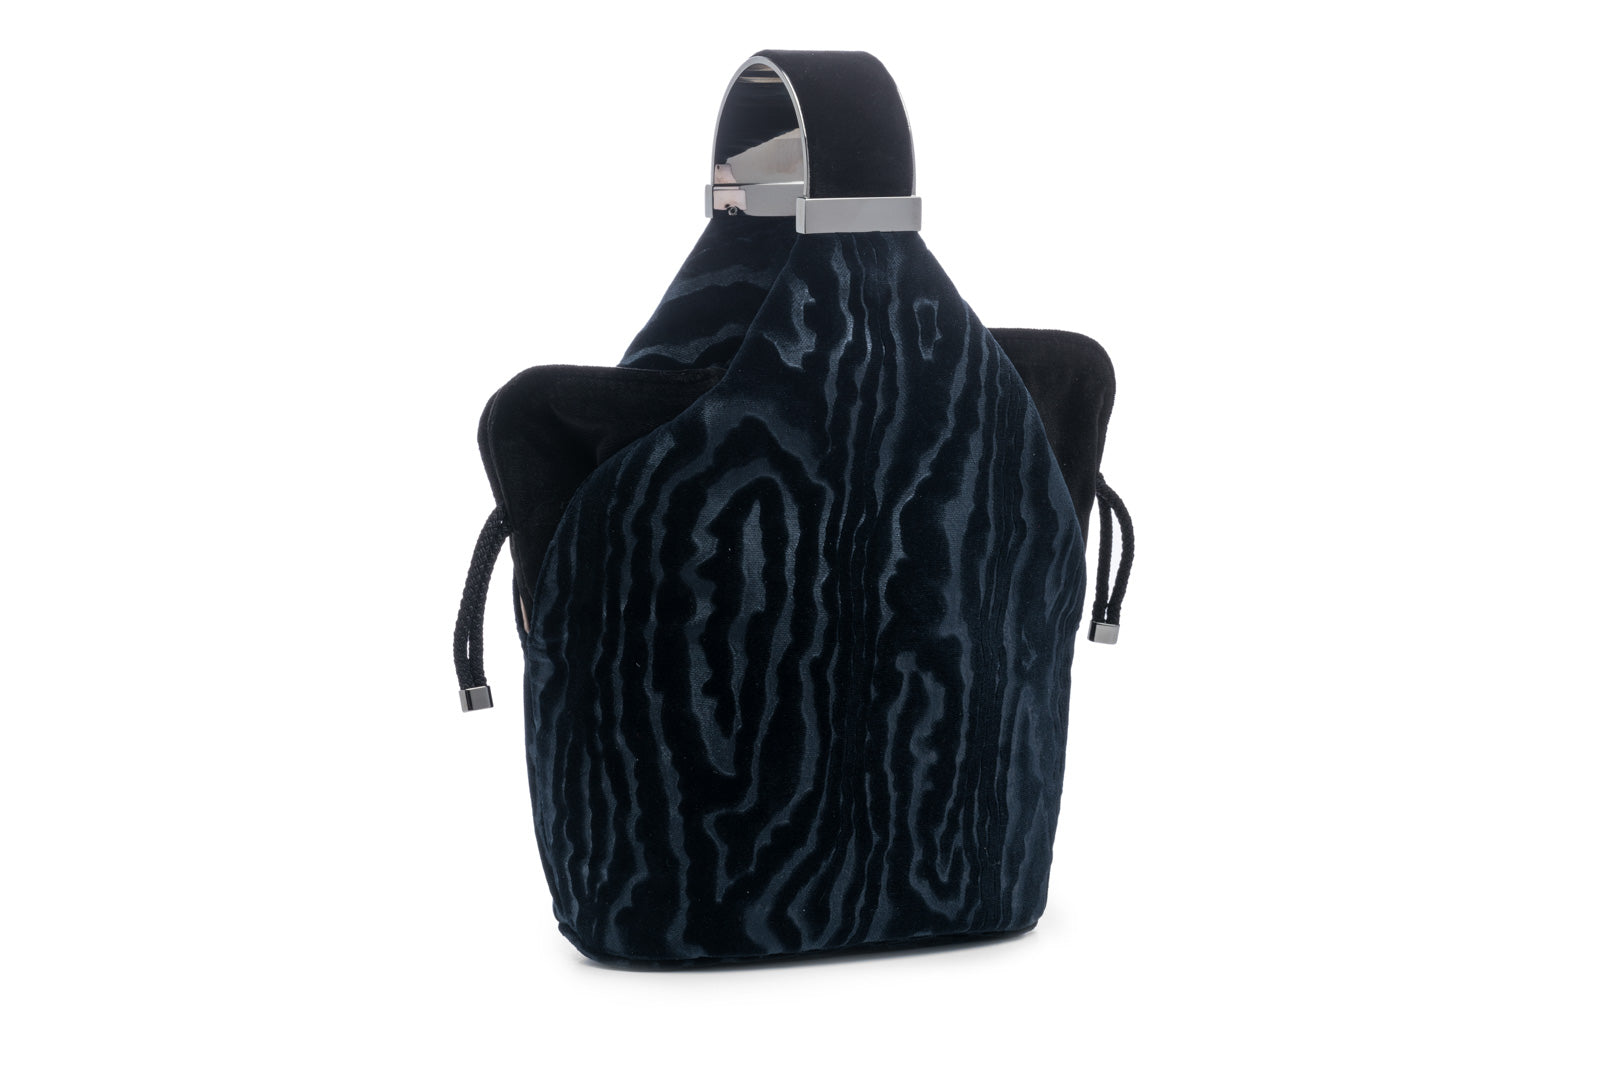 Kit Bracelet Bag in Navy Blue Moiré Velvet with Gunmetal Hardware